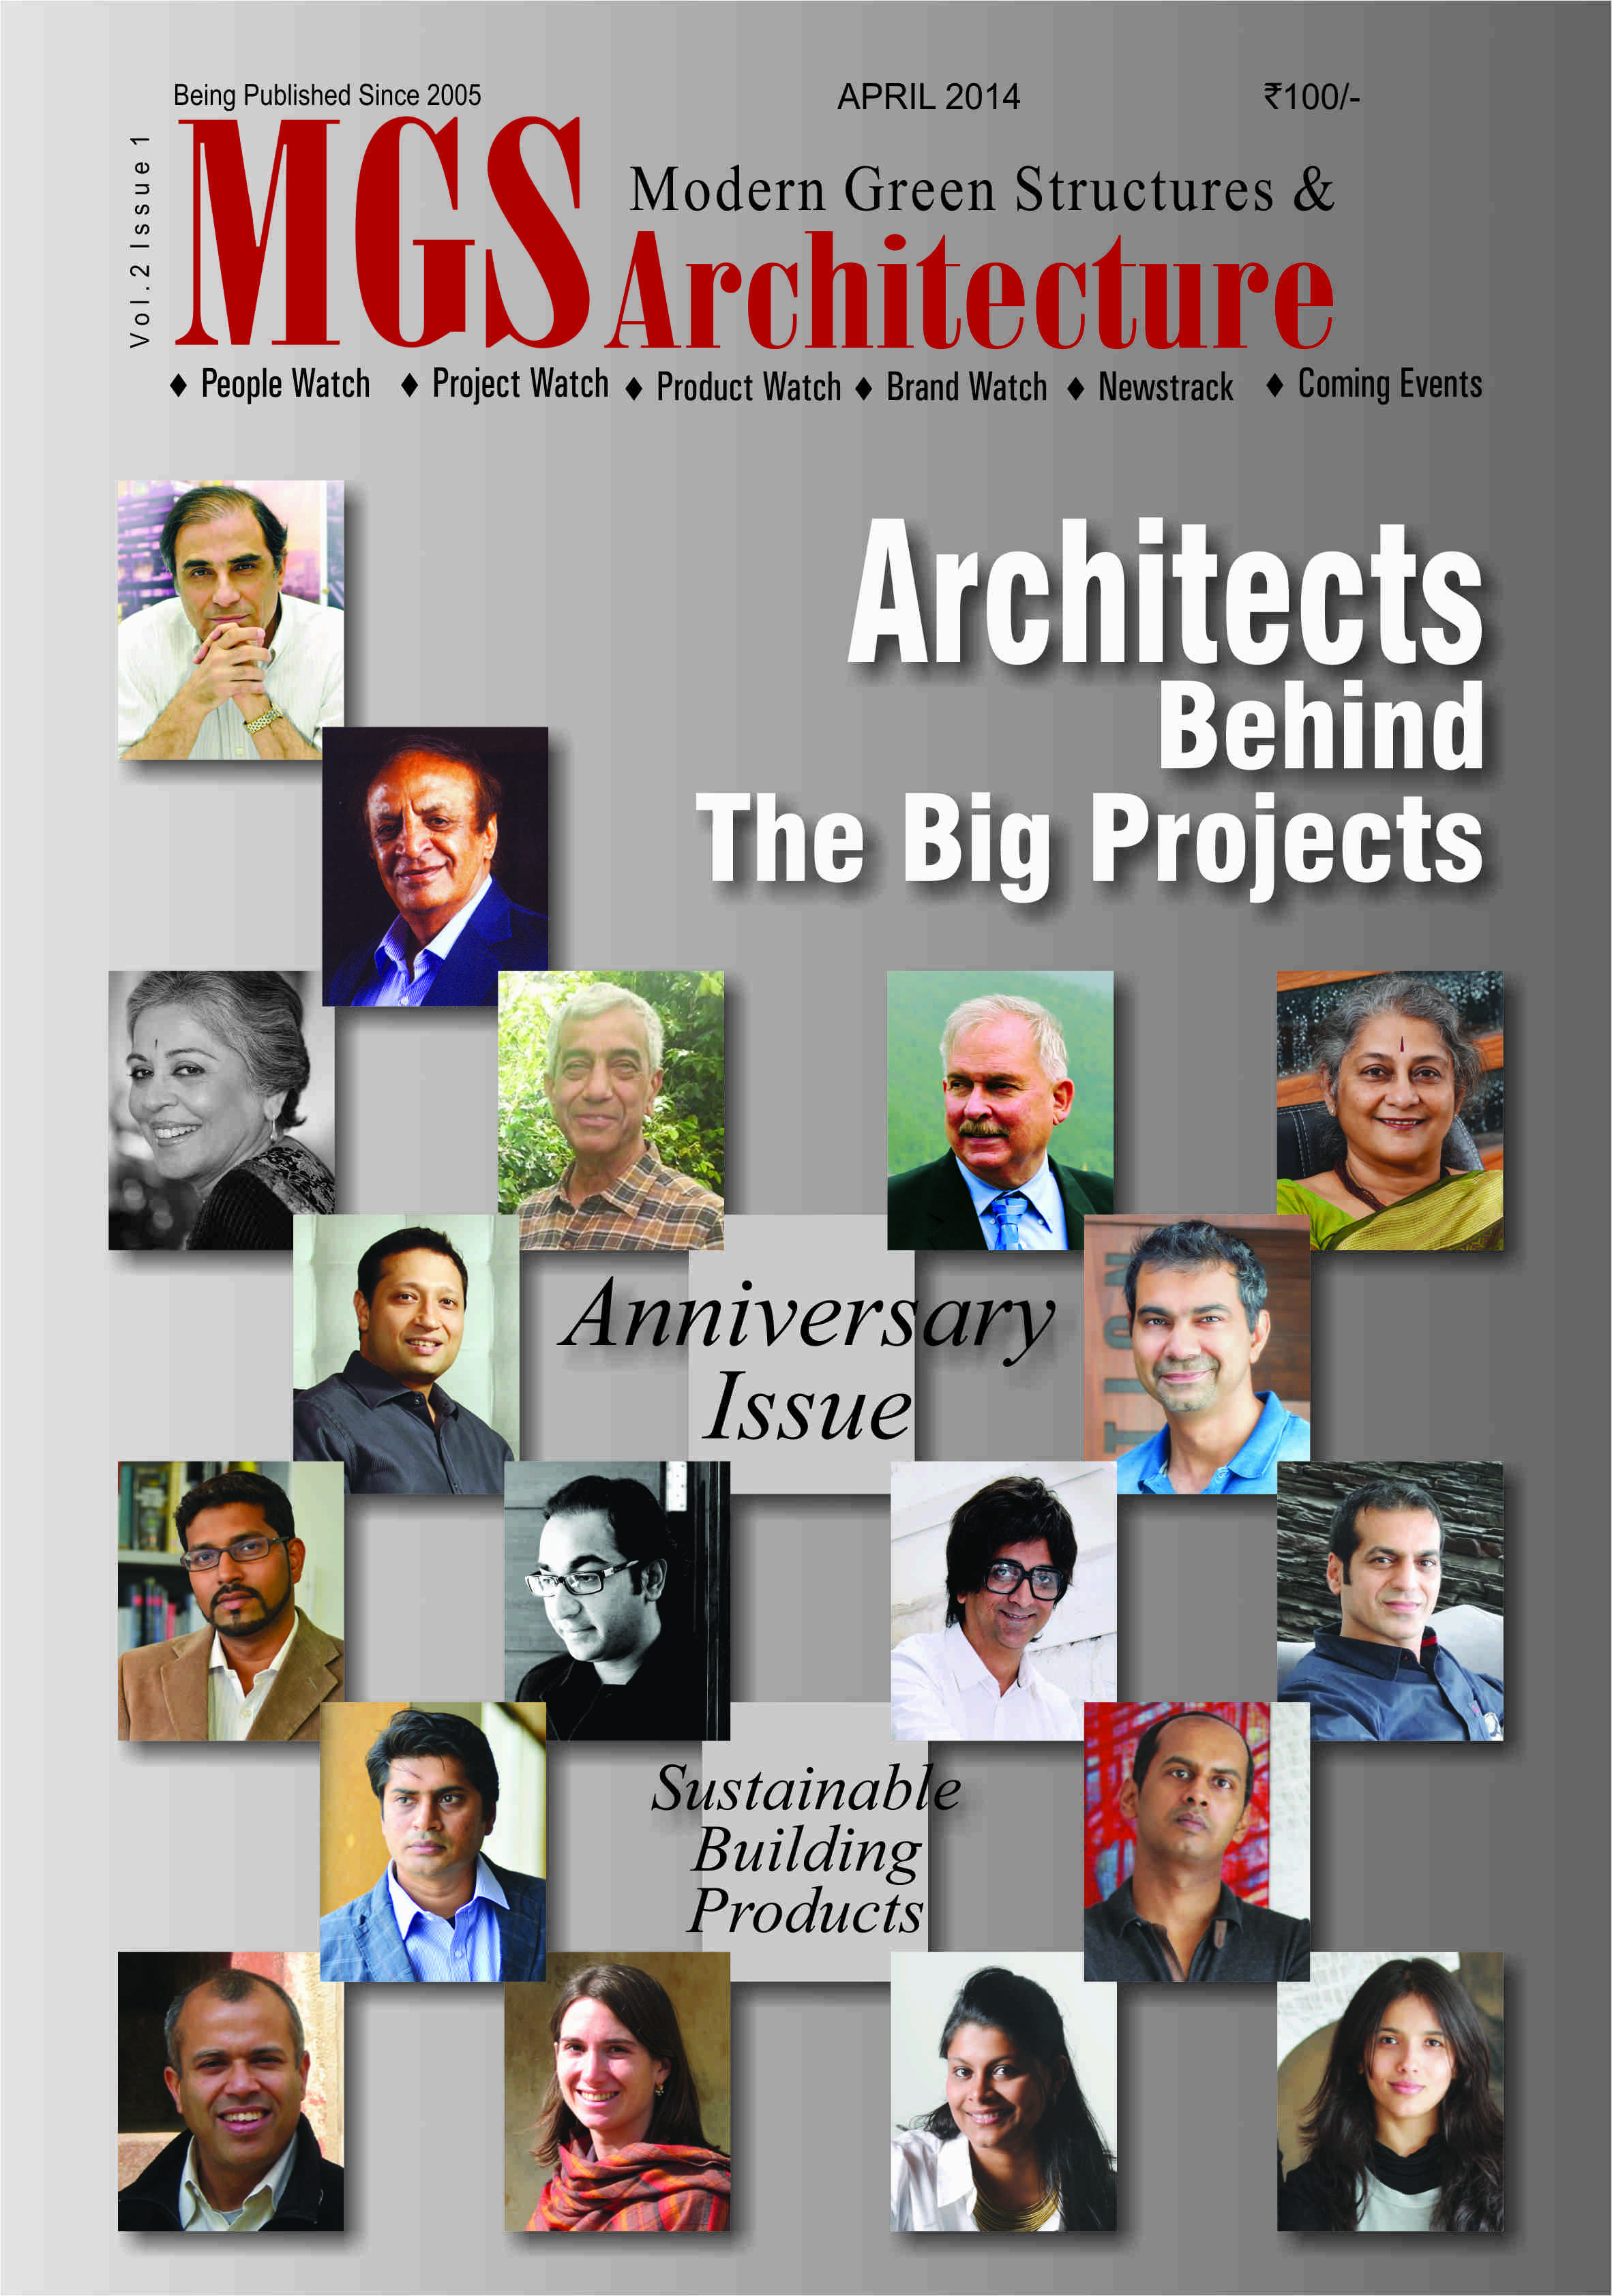 Architects Behind the Big Projects